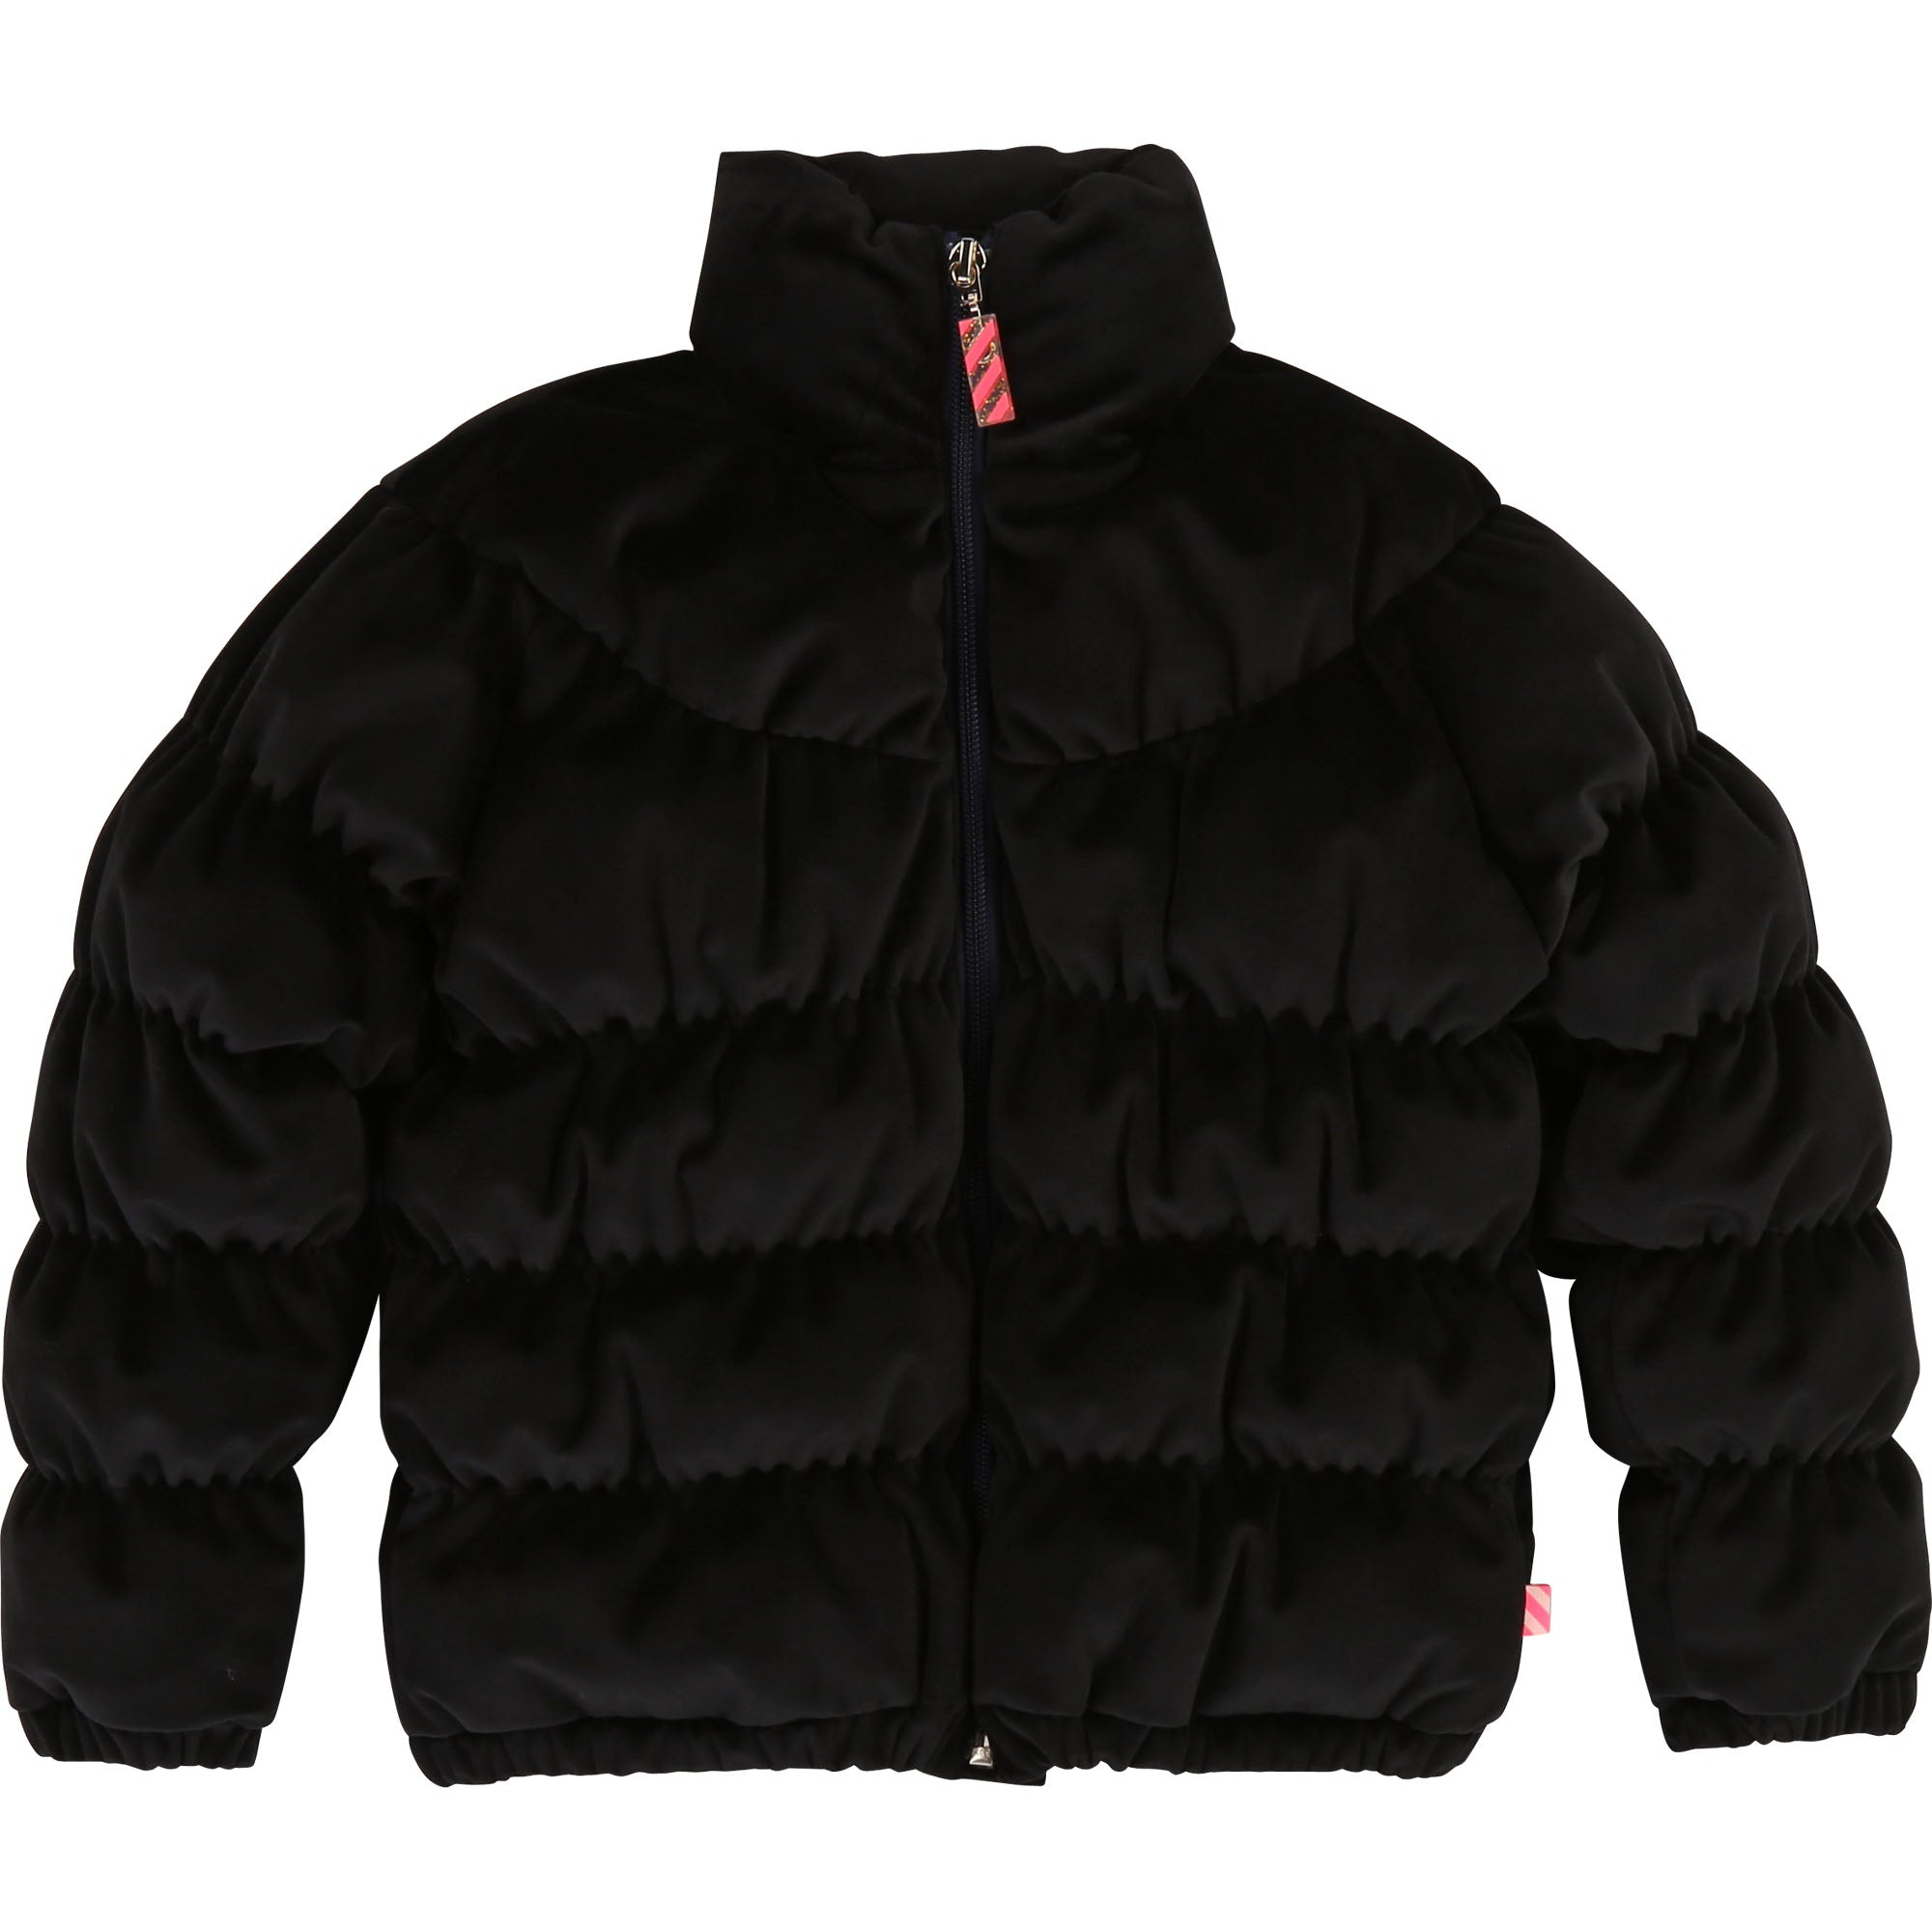 BILLIEBLUSH Girls Black Puffy Jacket